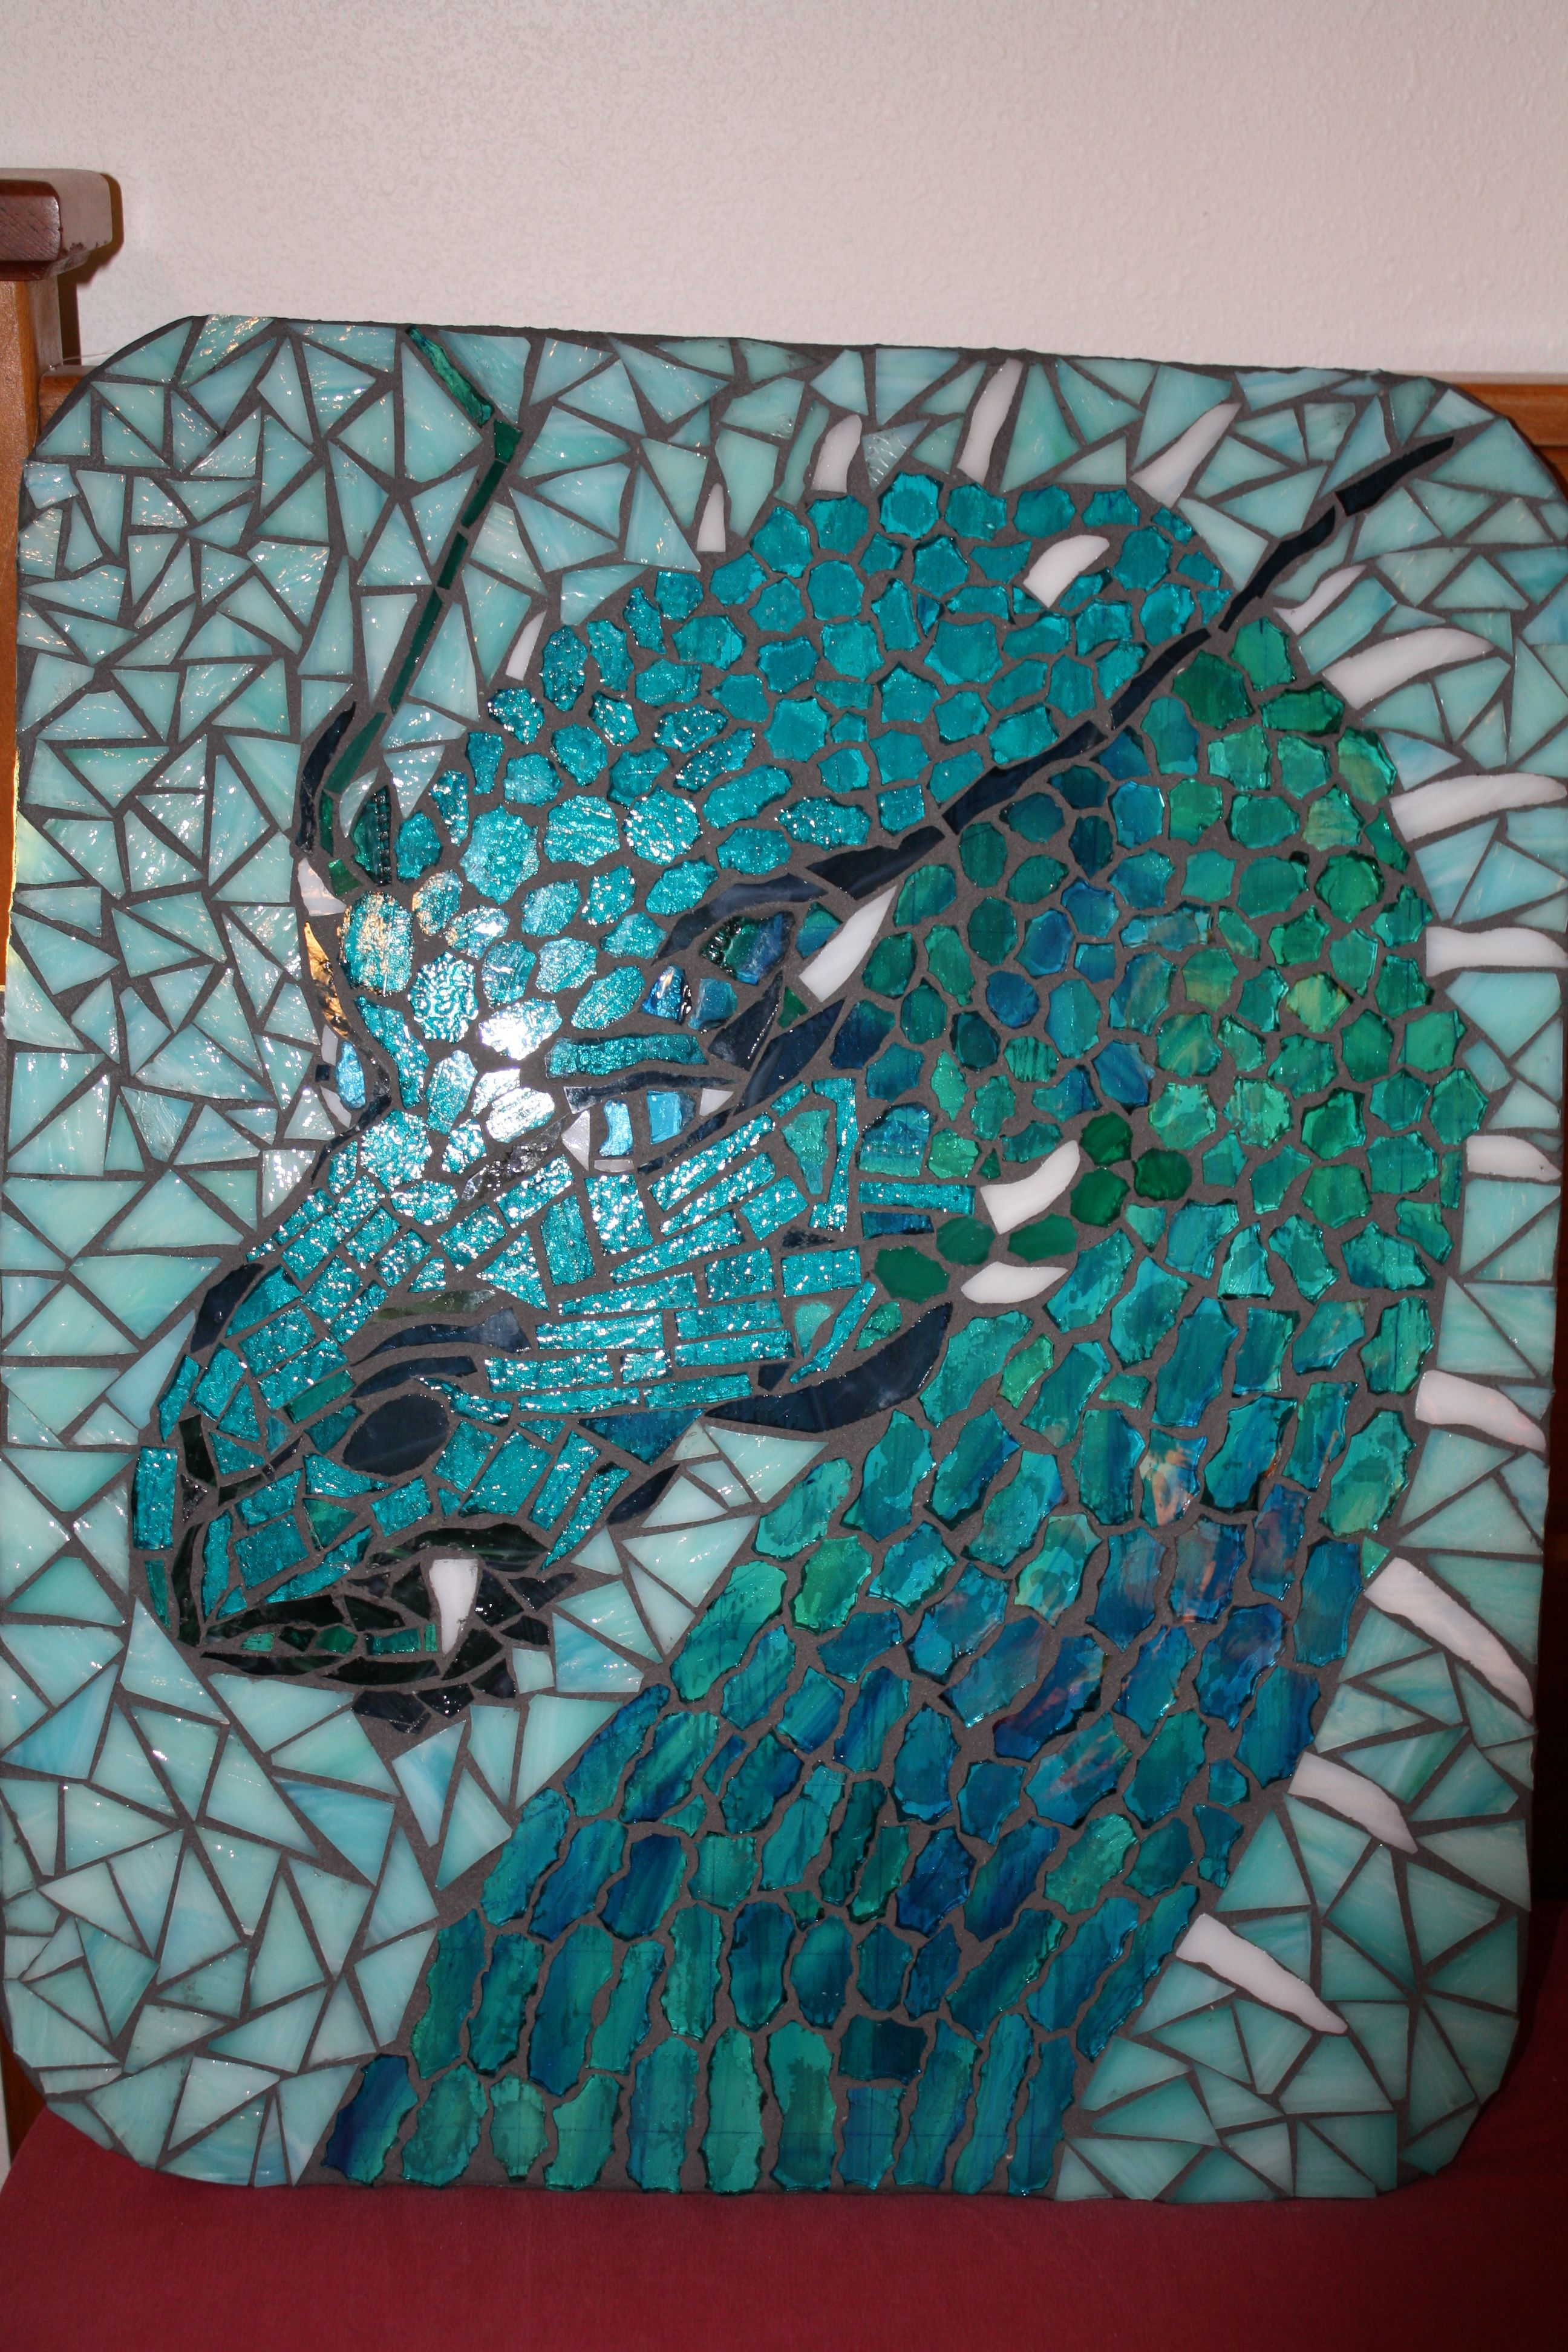 Red Dragon Tile : Stained glass dragon mosaic things my mom has made